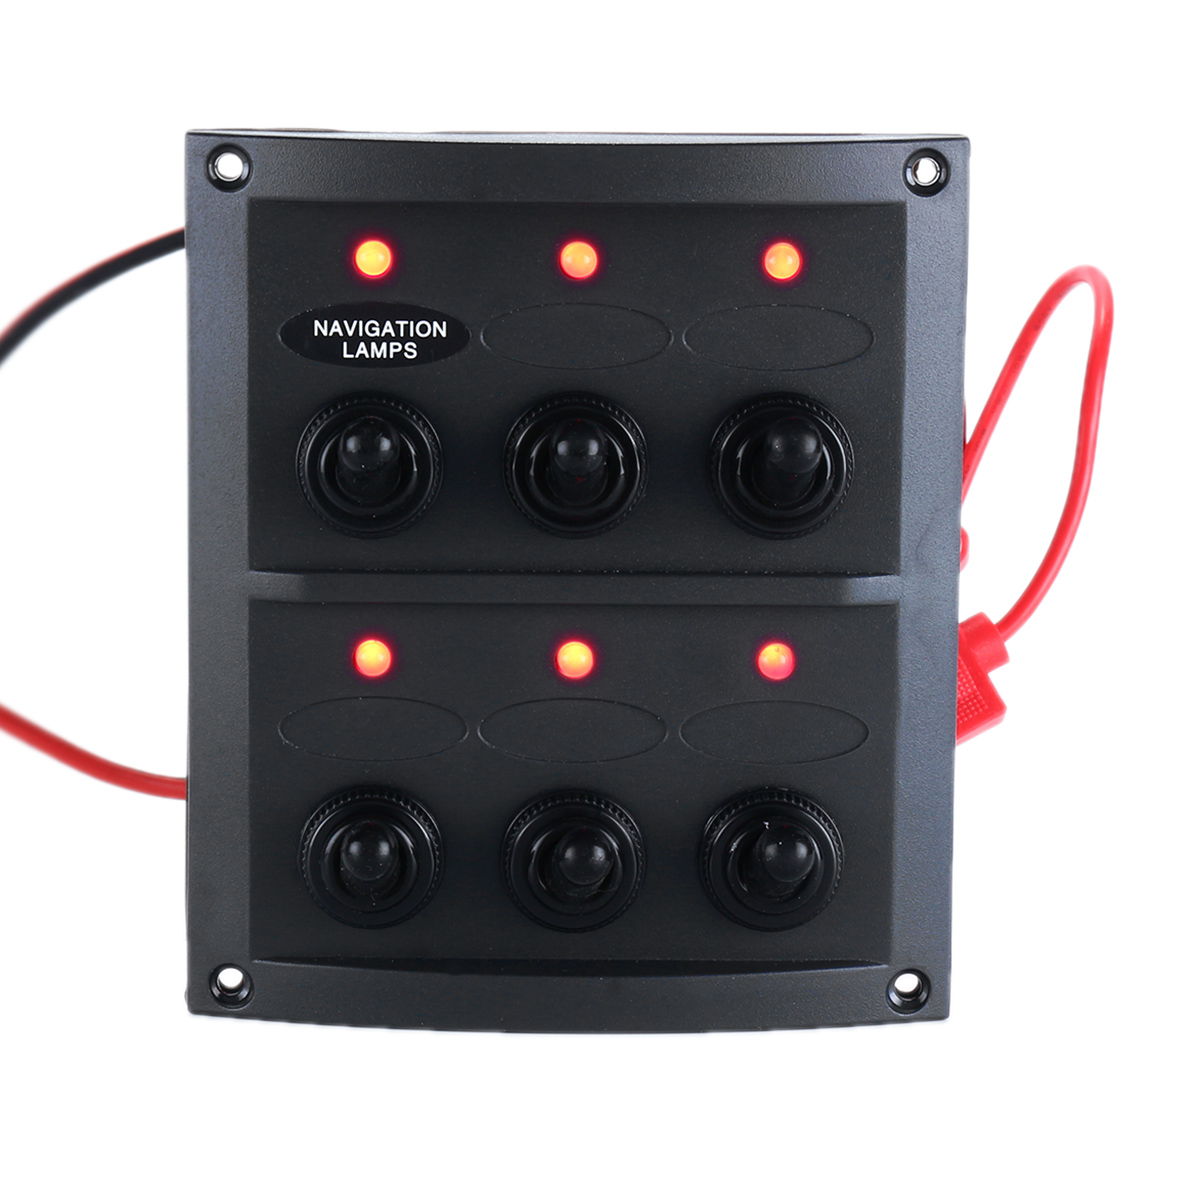 DC 12V 6 Gang Toggle Switch Panel Red LED Light 15A Blade Fuses